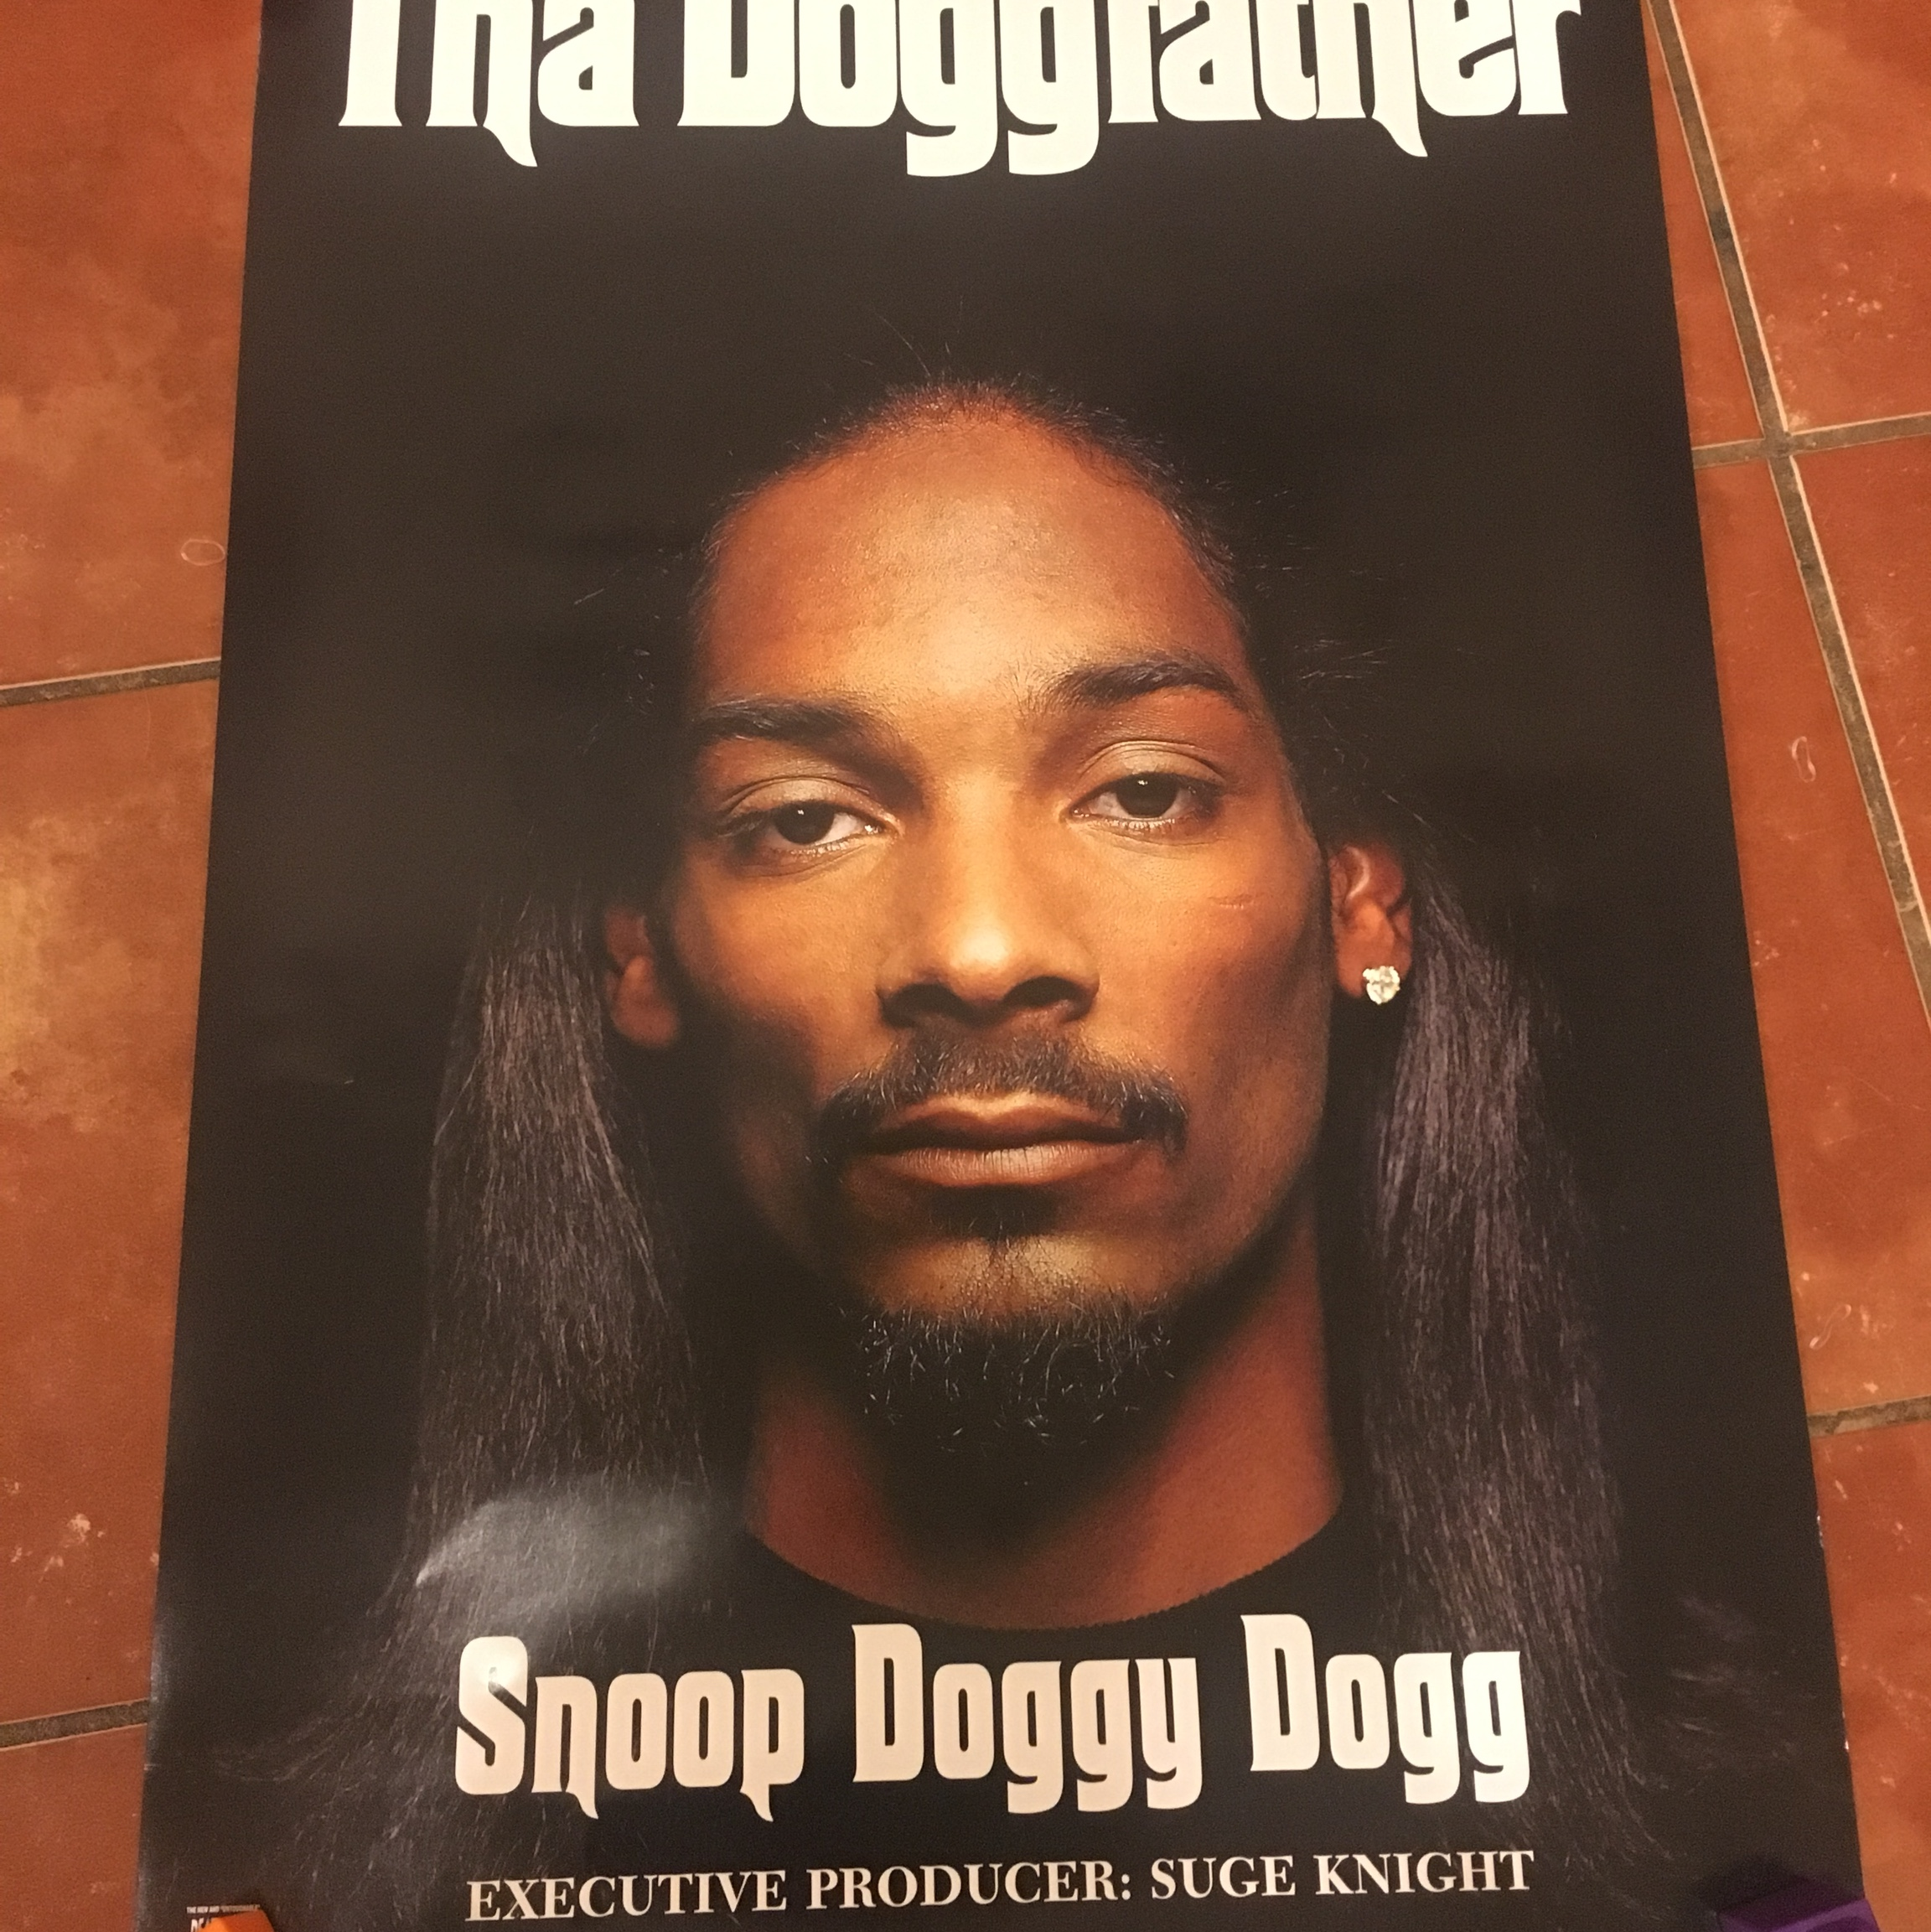 Vintage 1996 Snoop Doggy Dogg The Doggfather Promo    - Depop